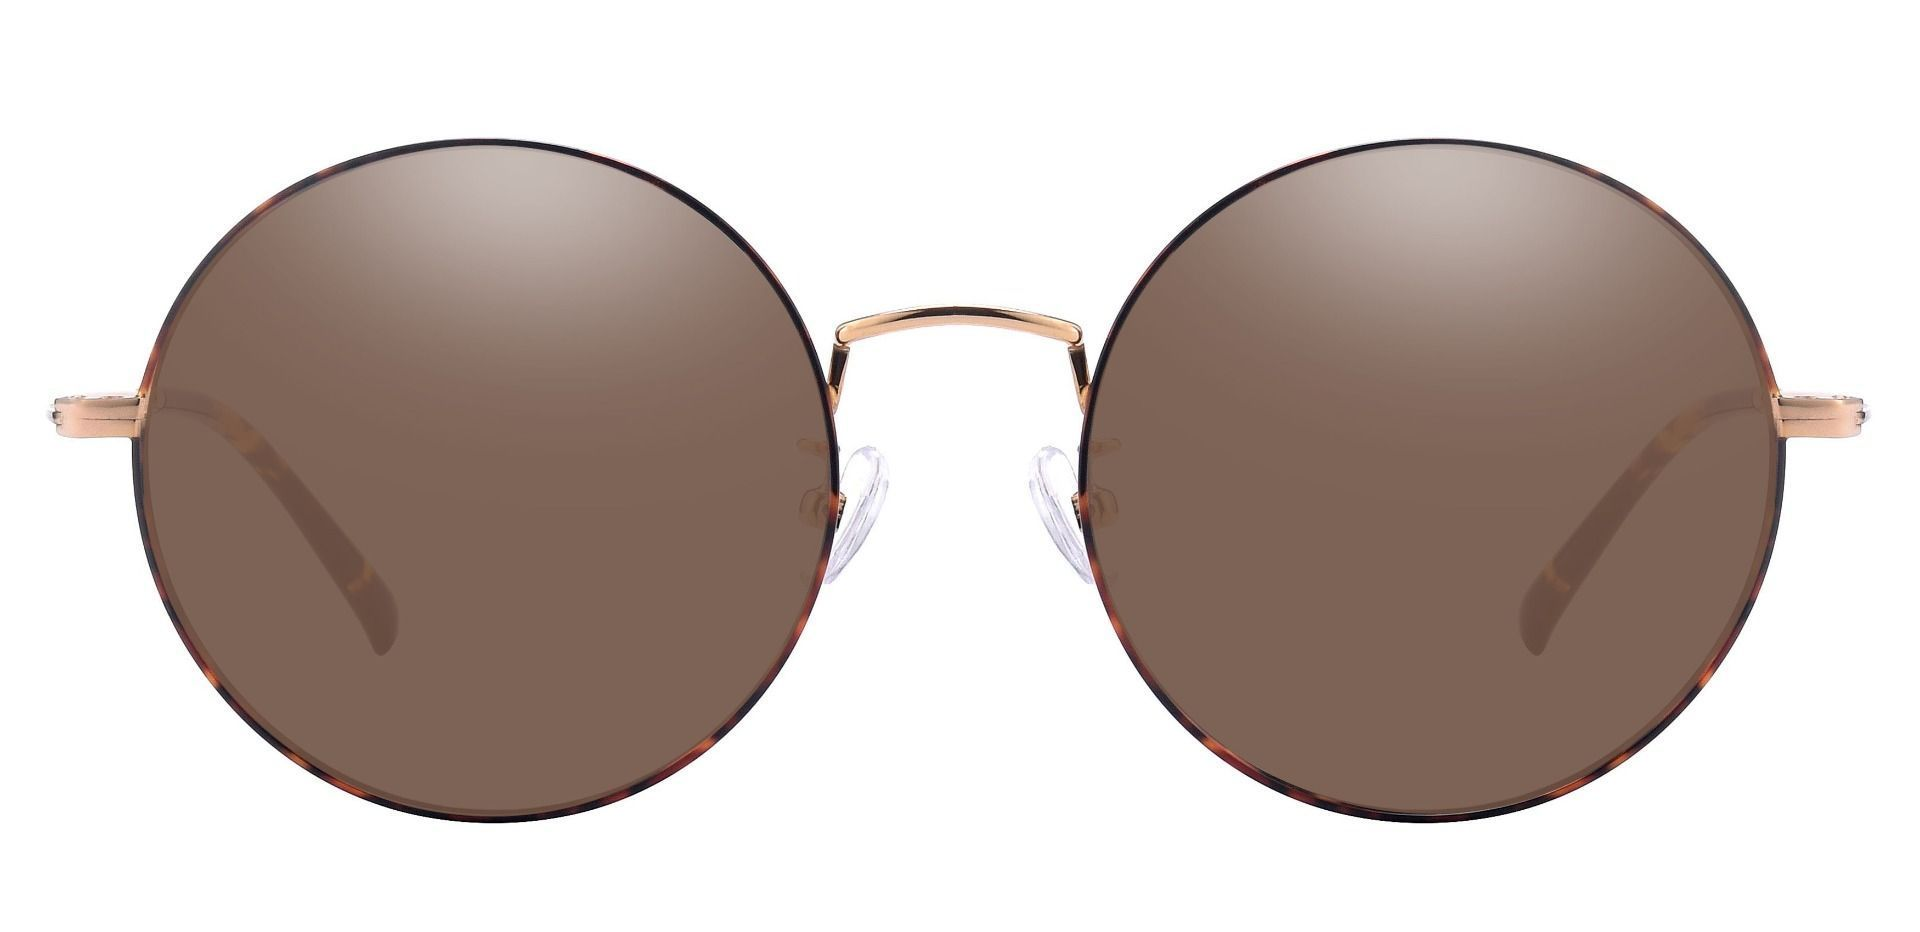 Sawyer Round Prescription Sunglasses -  Tortoise Frame With Brown Lenses